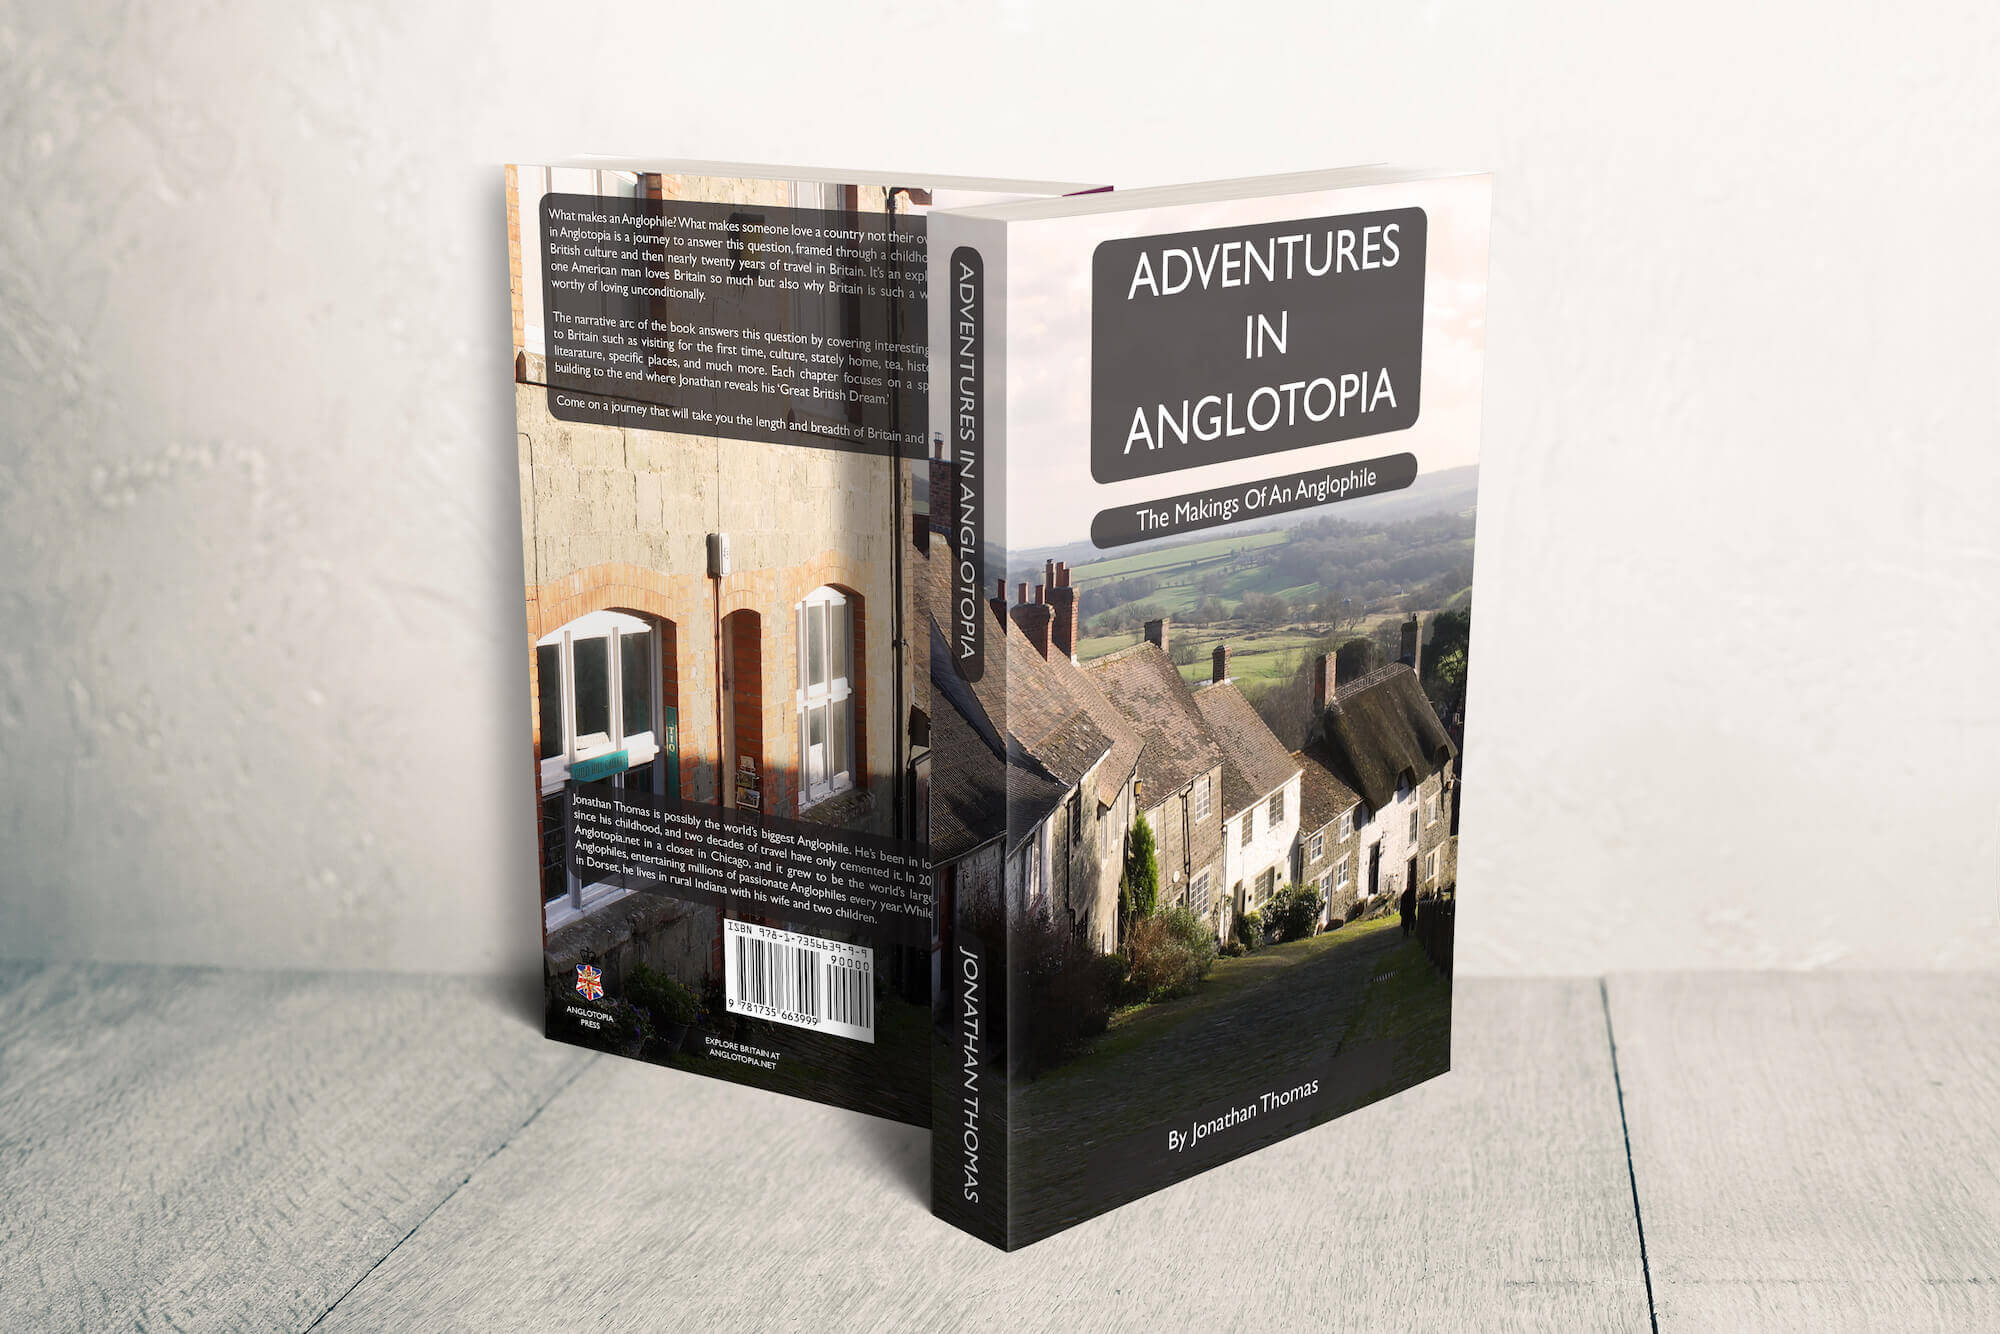 The Paperback Edition of Adventures in Anglotopia is Now Available Everywhere!